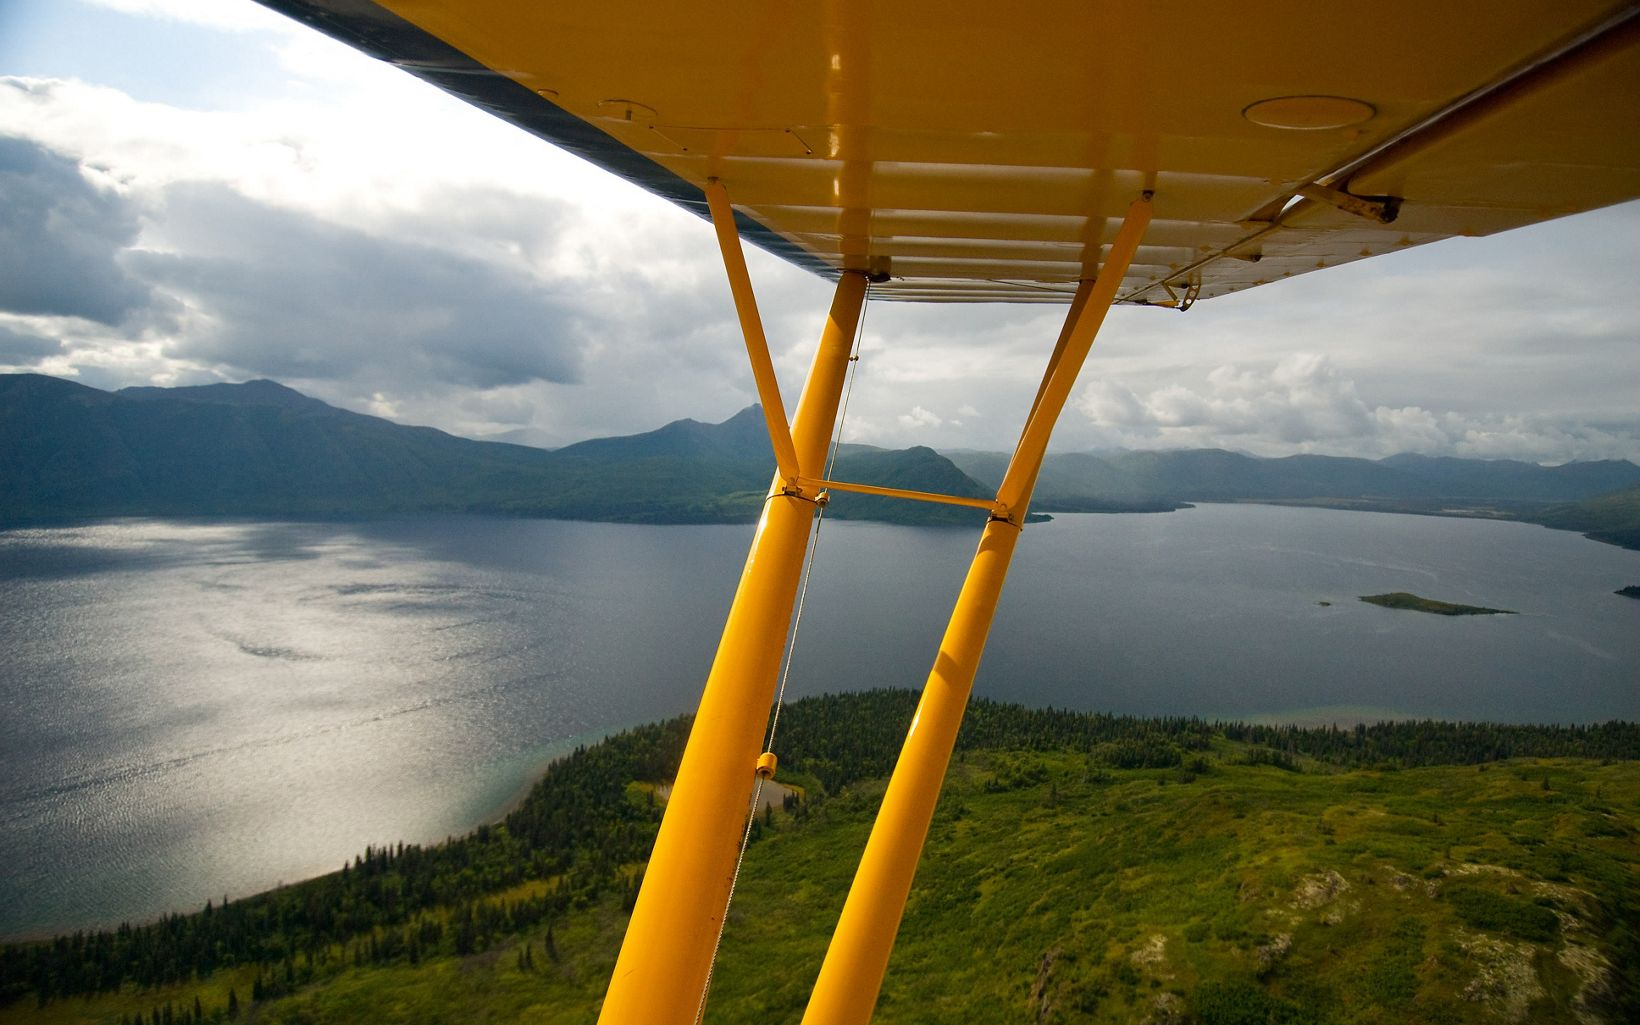 Aerial view of Alaska's Bristol Bay headwaters from the backseat of a yellow Piper Super Cub.